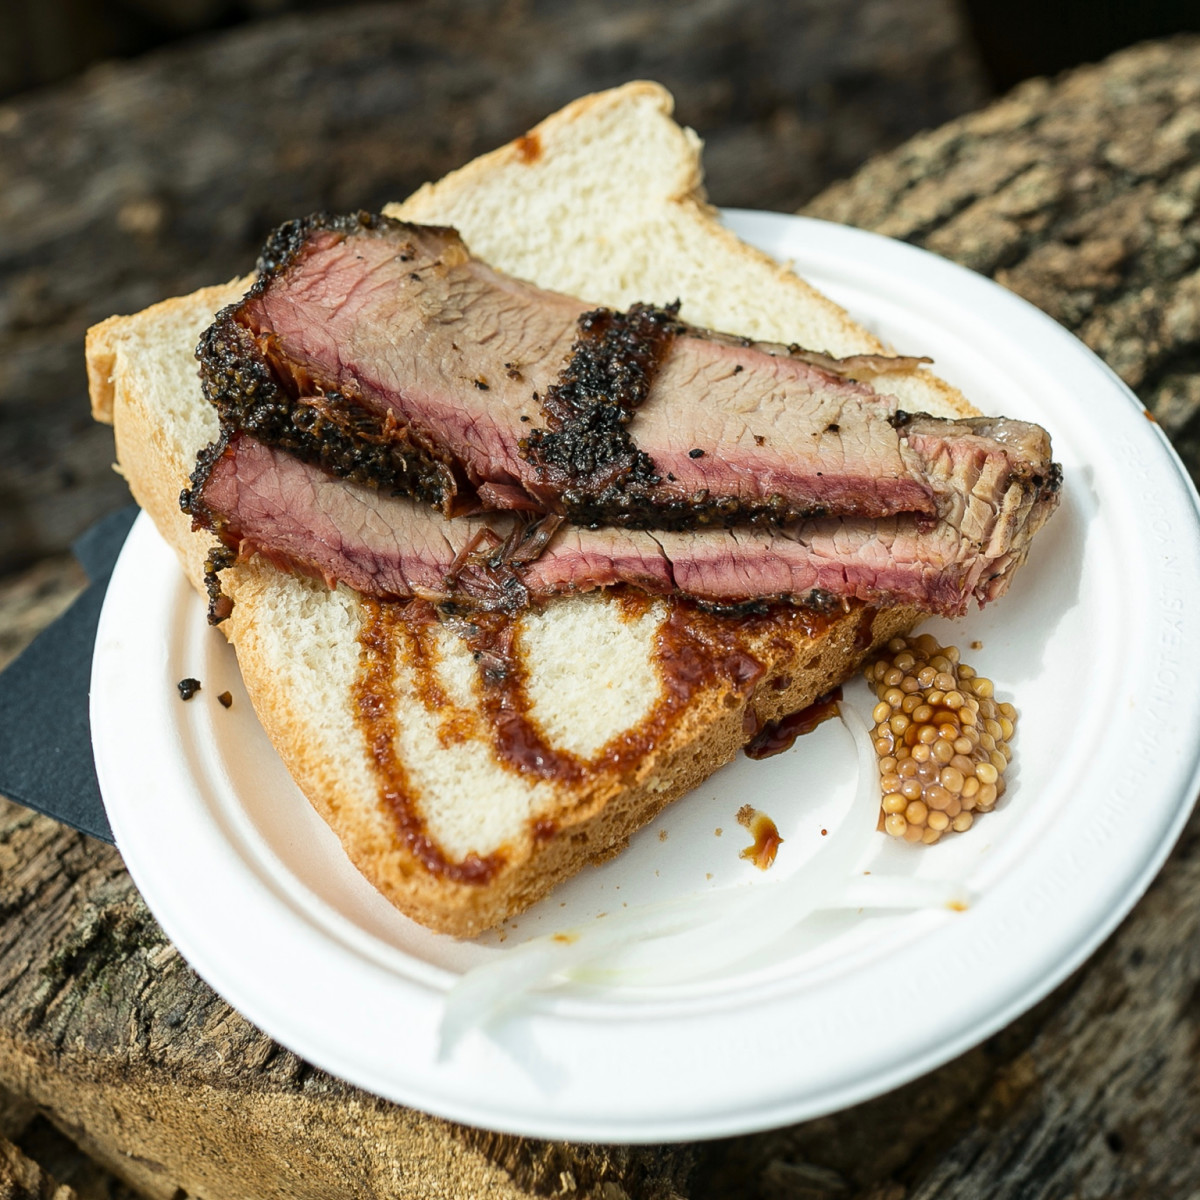 Southern Smoke 2017 Aaron Franklin barbecue brisket